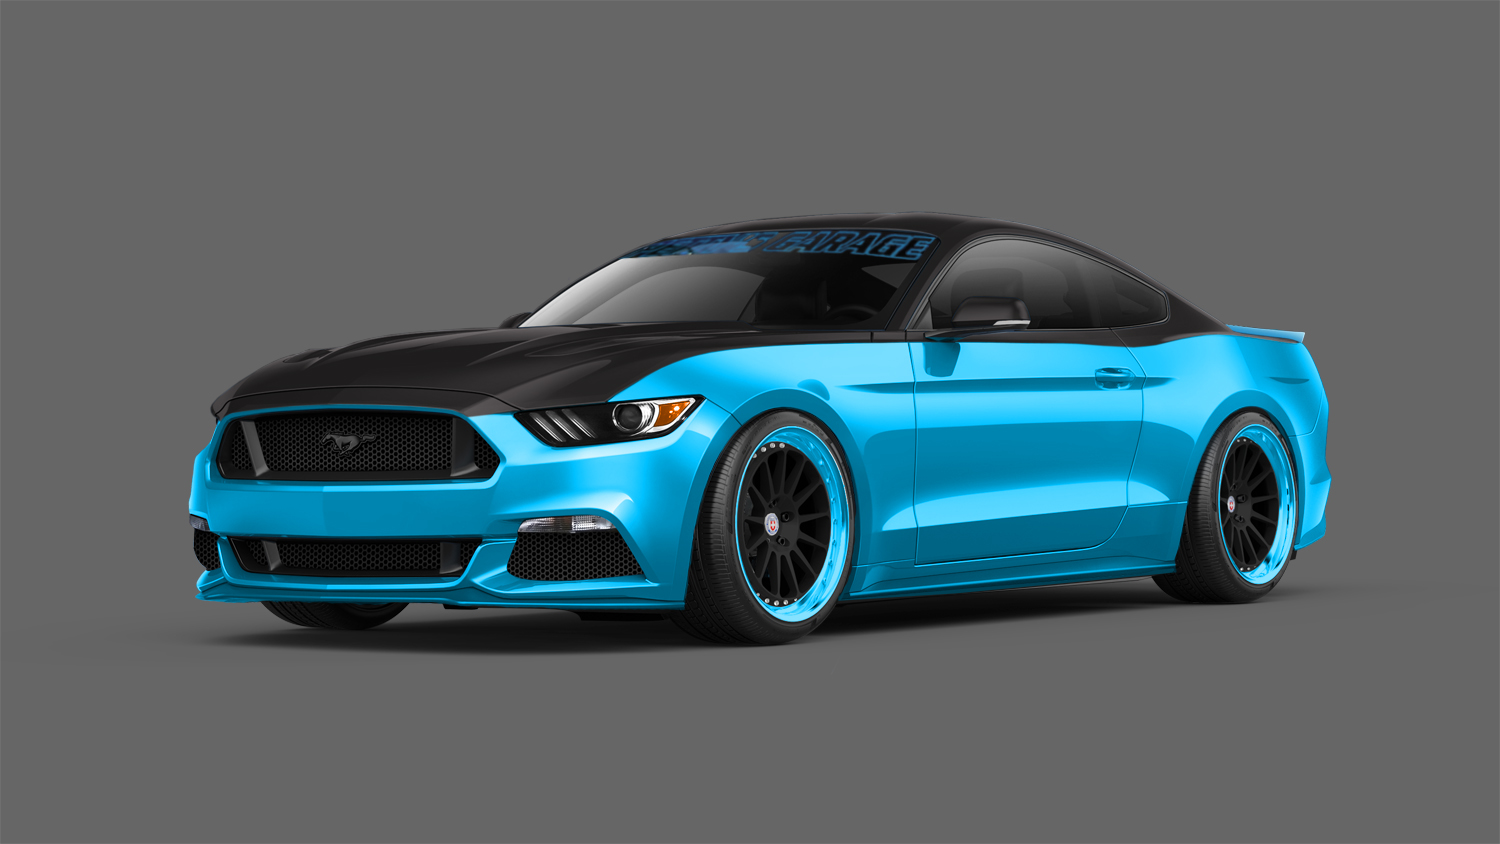 petty s garage 2015 ford mustang to be built in limited run of 143 cars. Black Bedroom Furniture Sets. Home Design Ideas